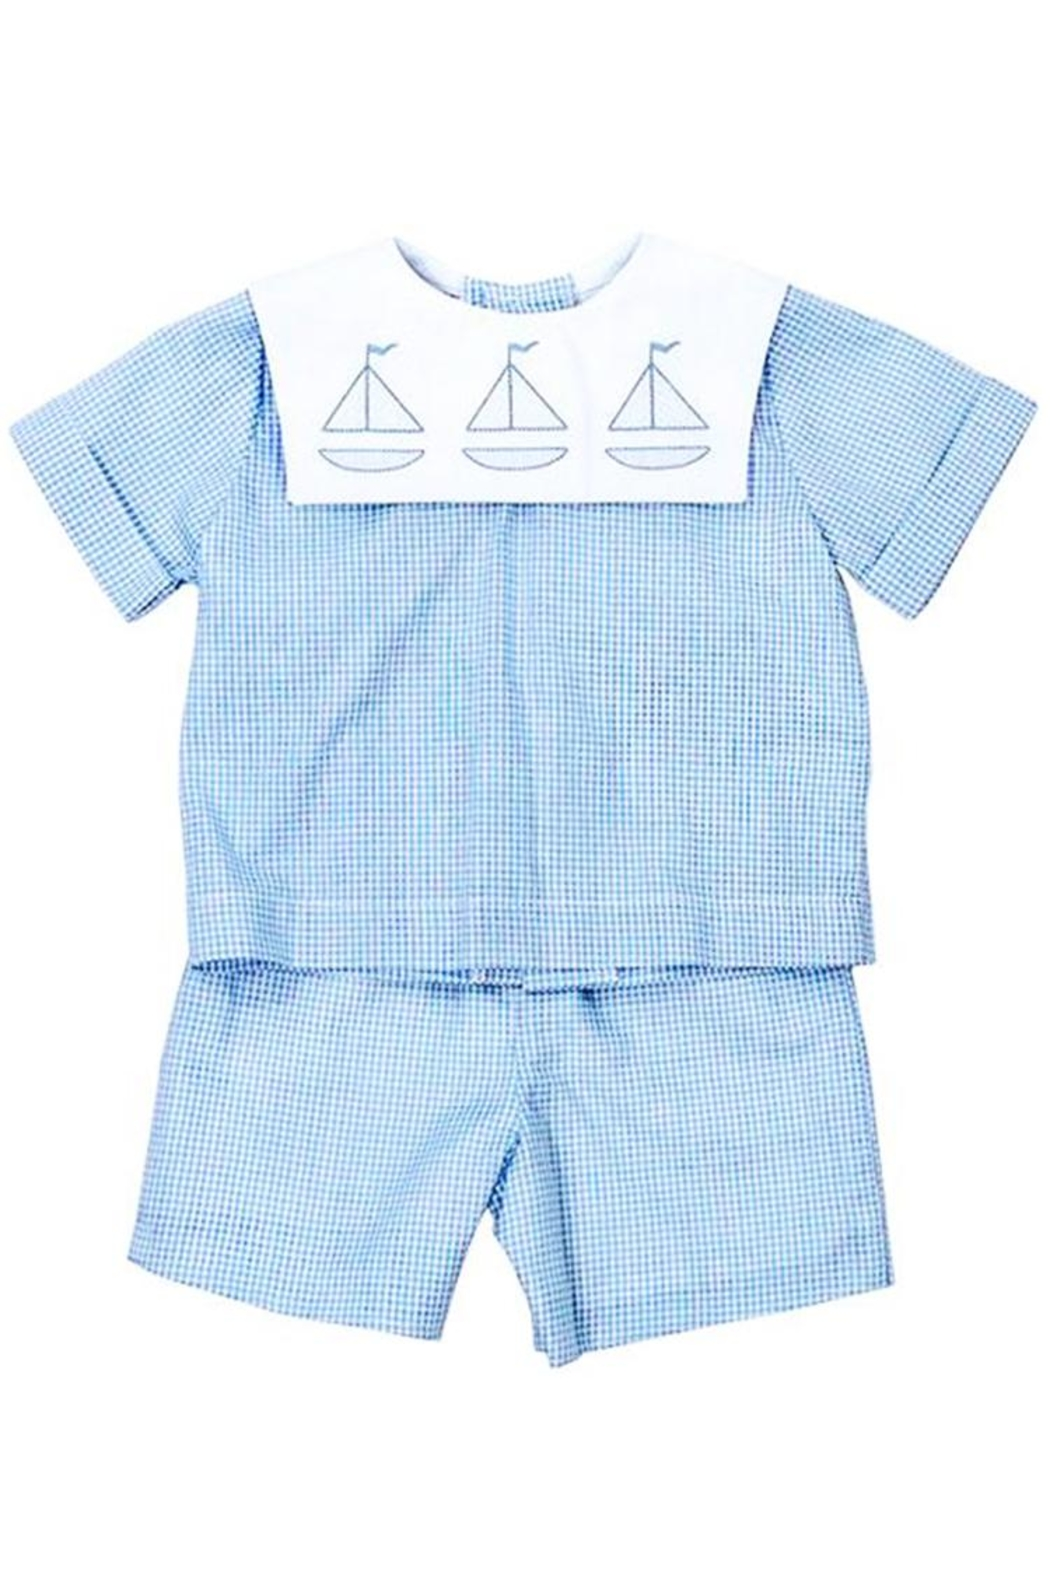 Bailey Boys Sailboat Shadow-Stitched Short-Set - Front Cropped Image